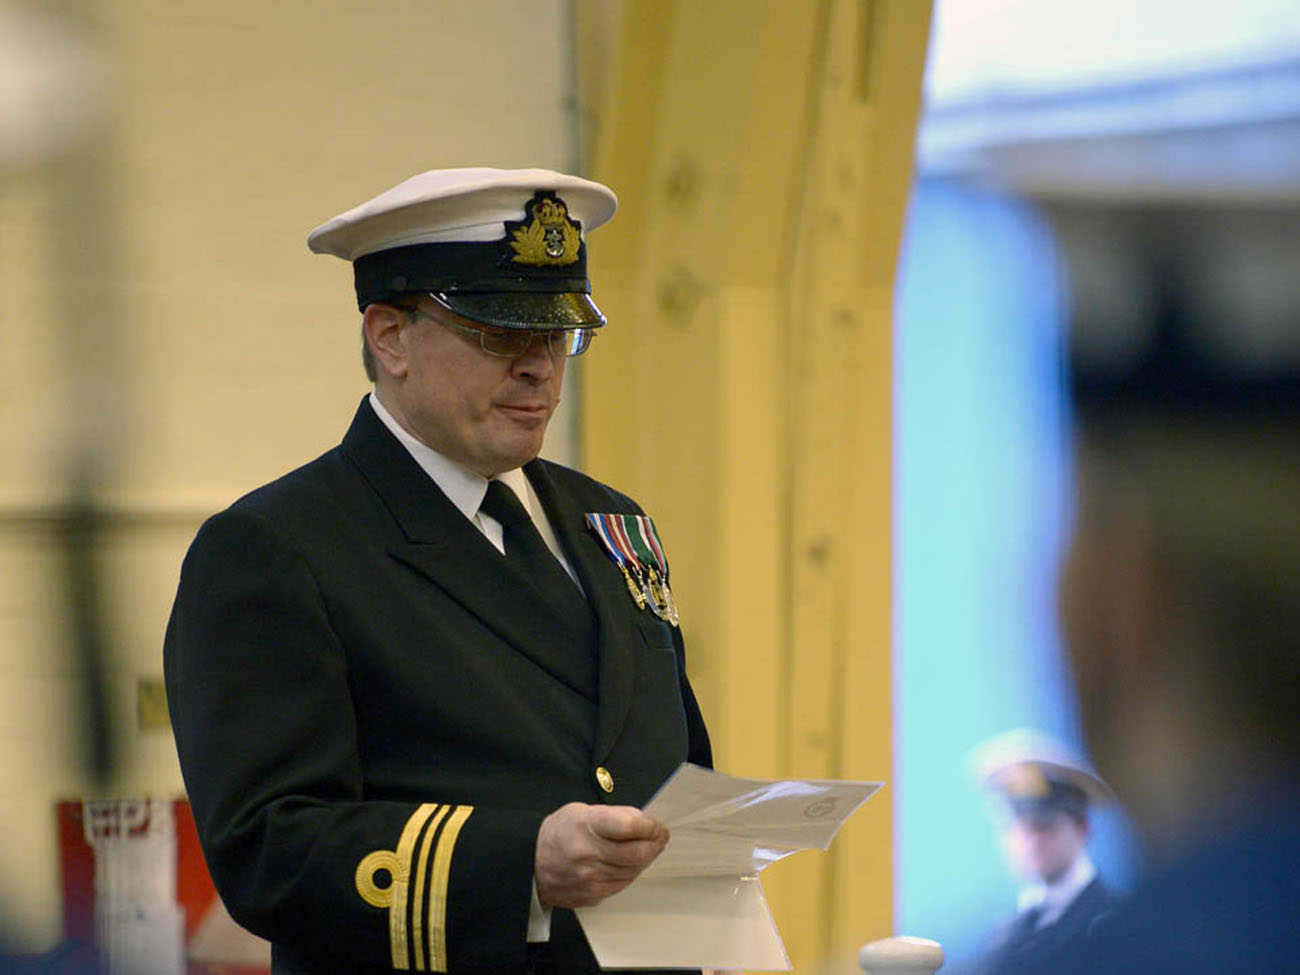 Princess Royal formally opens Royal Naval Reserve new unit